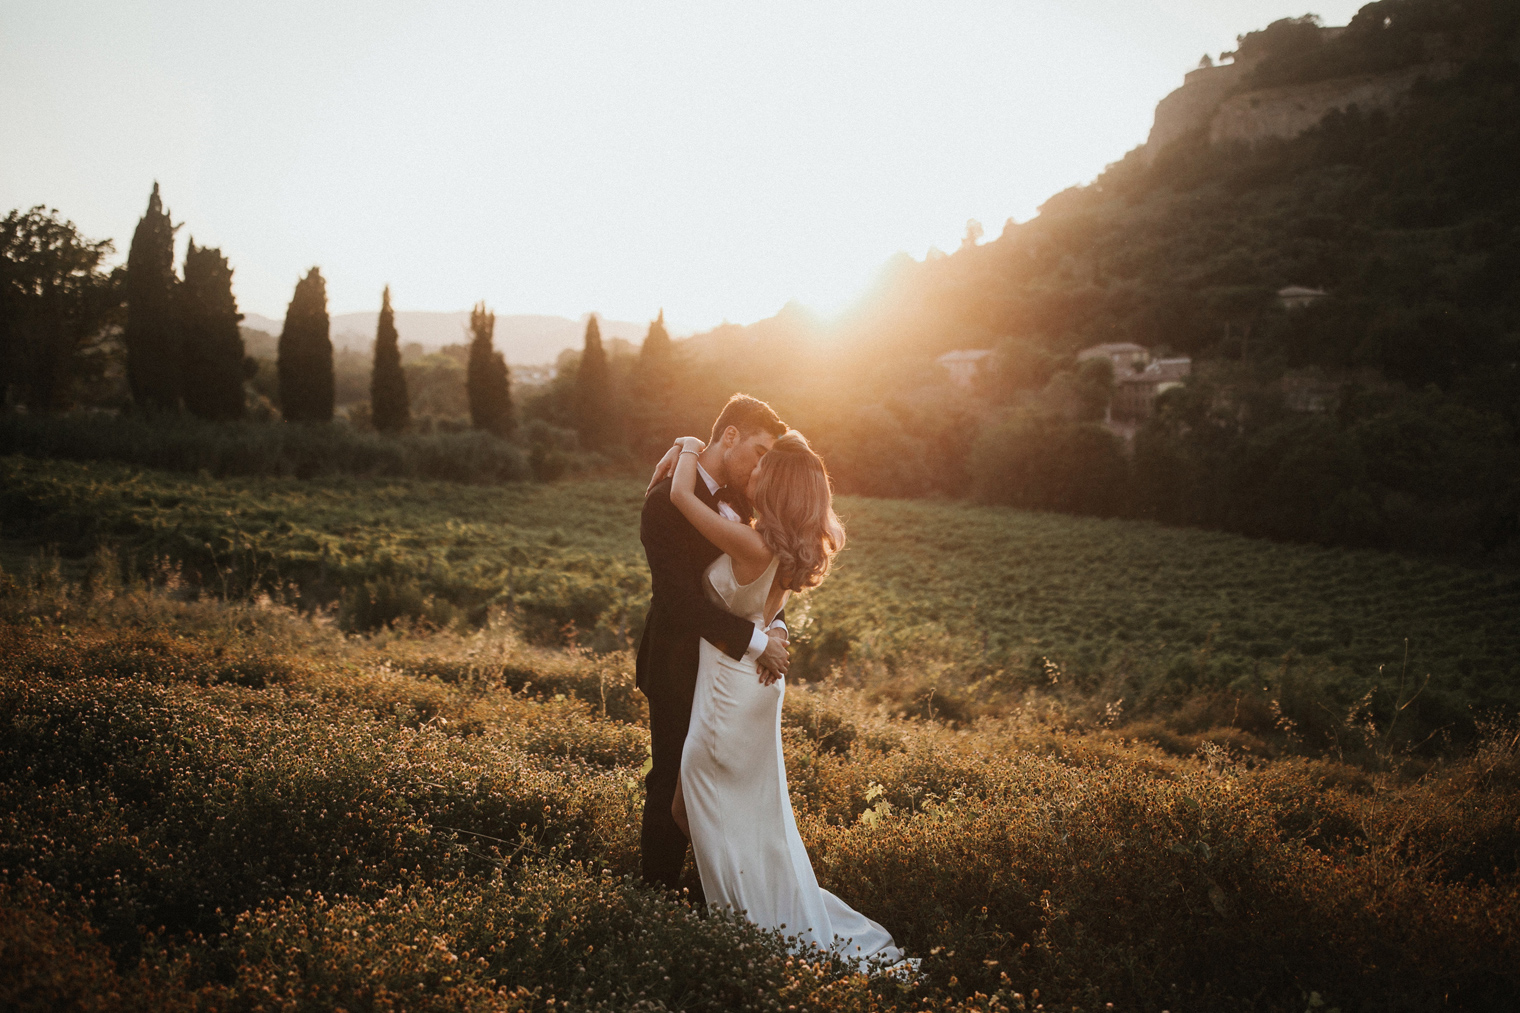 Sunset portraits in Italy with bride and groom